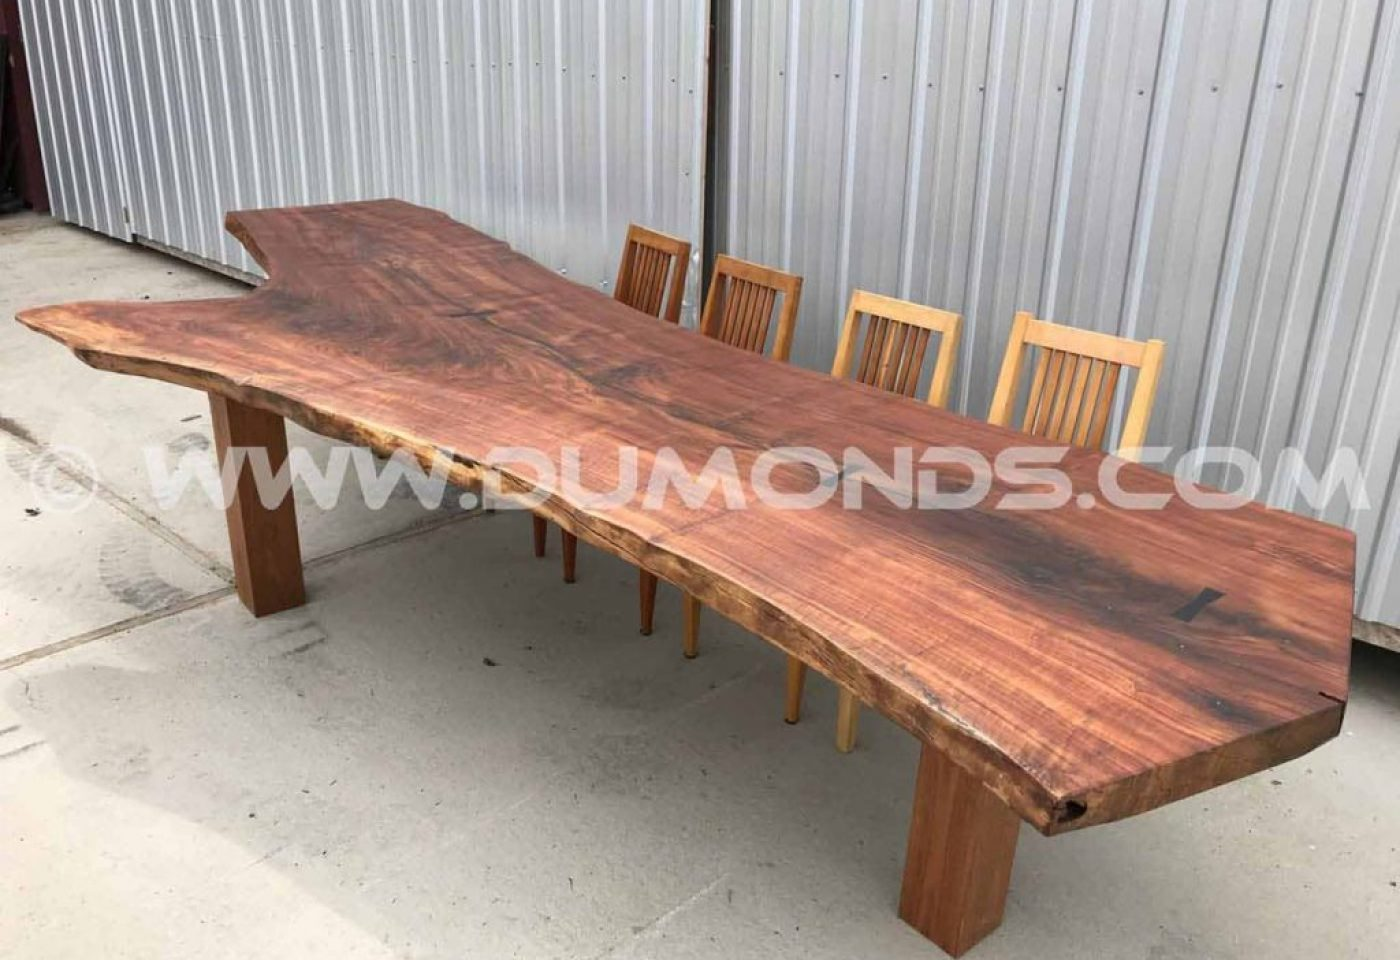 12'8″ LIVE EDGE WALNUT CROTCH DINING TABLE WITH WALNUT LEGS